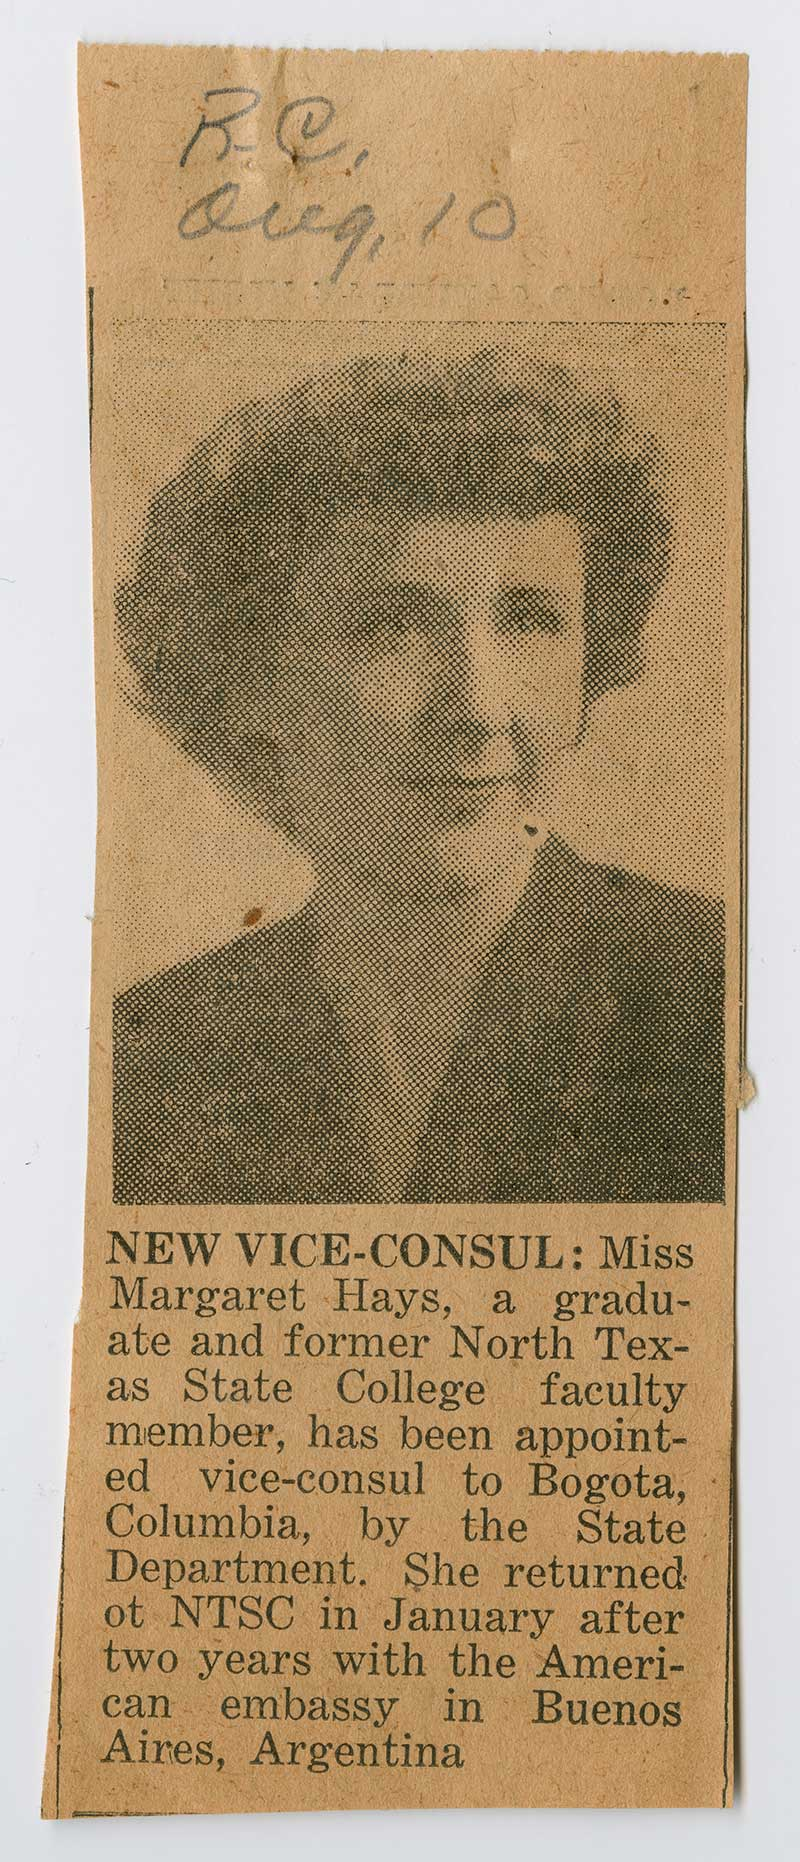 A slip cut out of a newspaper, the top of it a picture of a woman with short hair, under it text describing Margaret Hays.